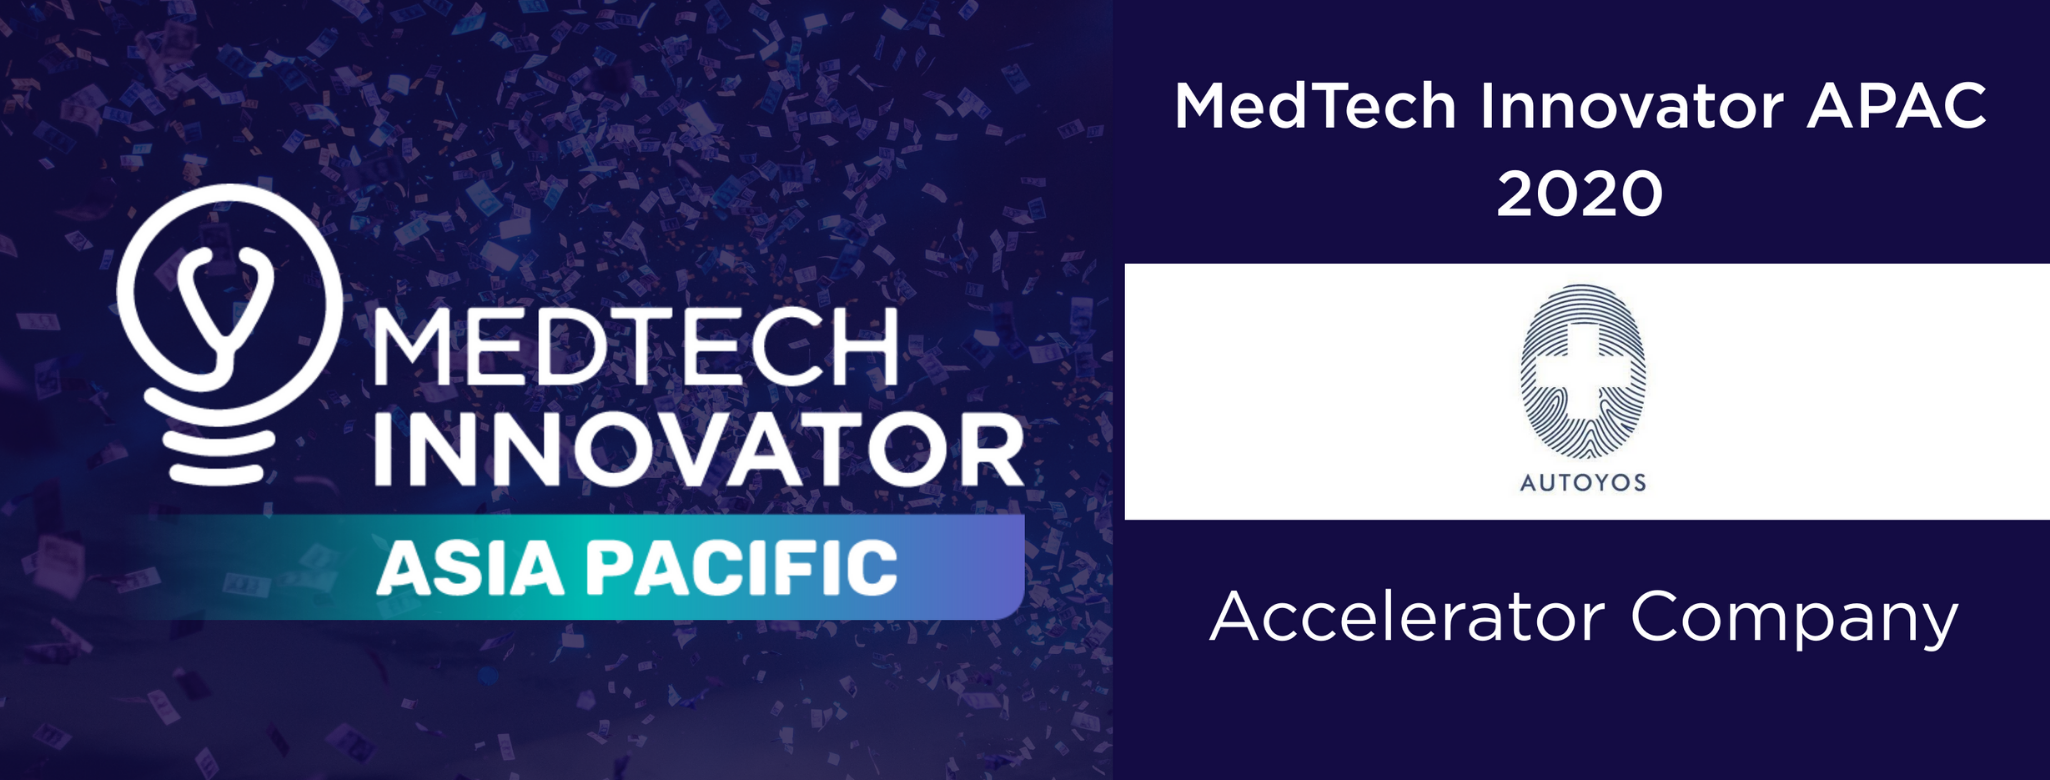 Asia Pacific Top 20 Medtech Innovator